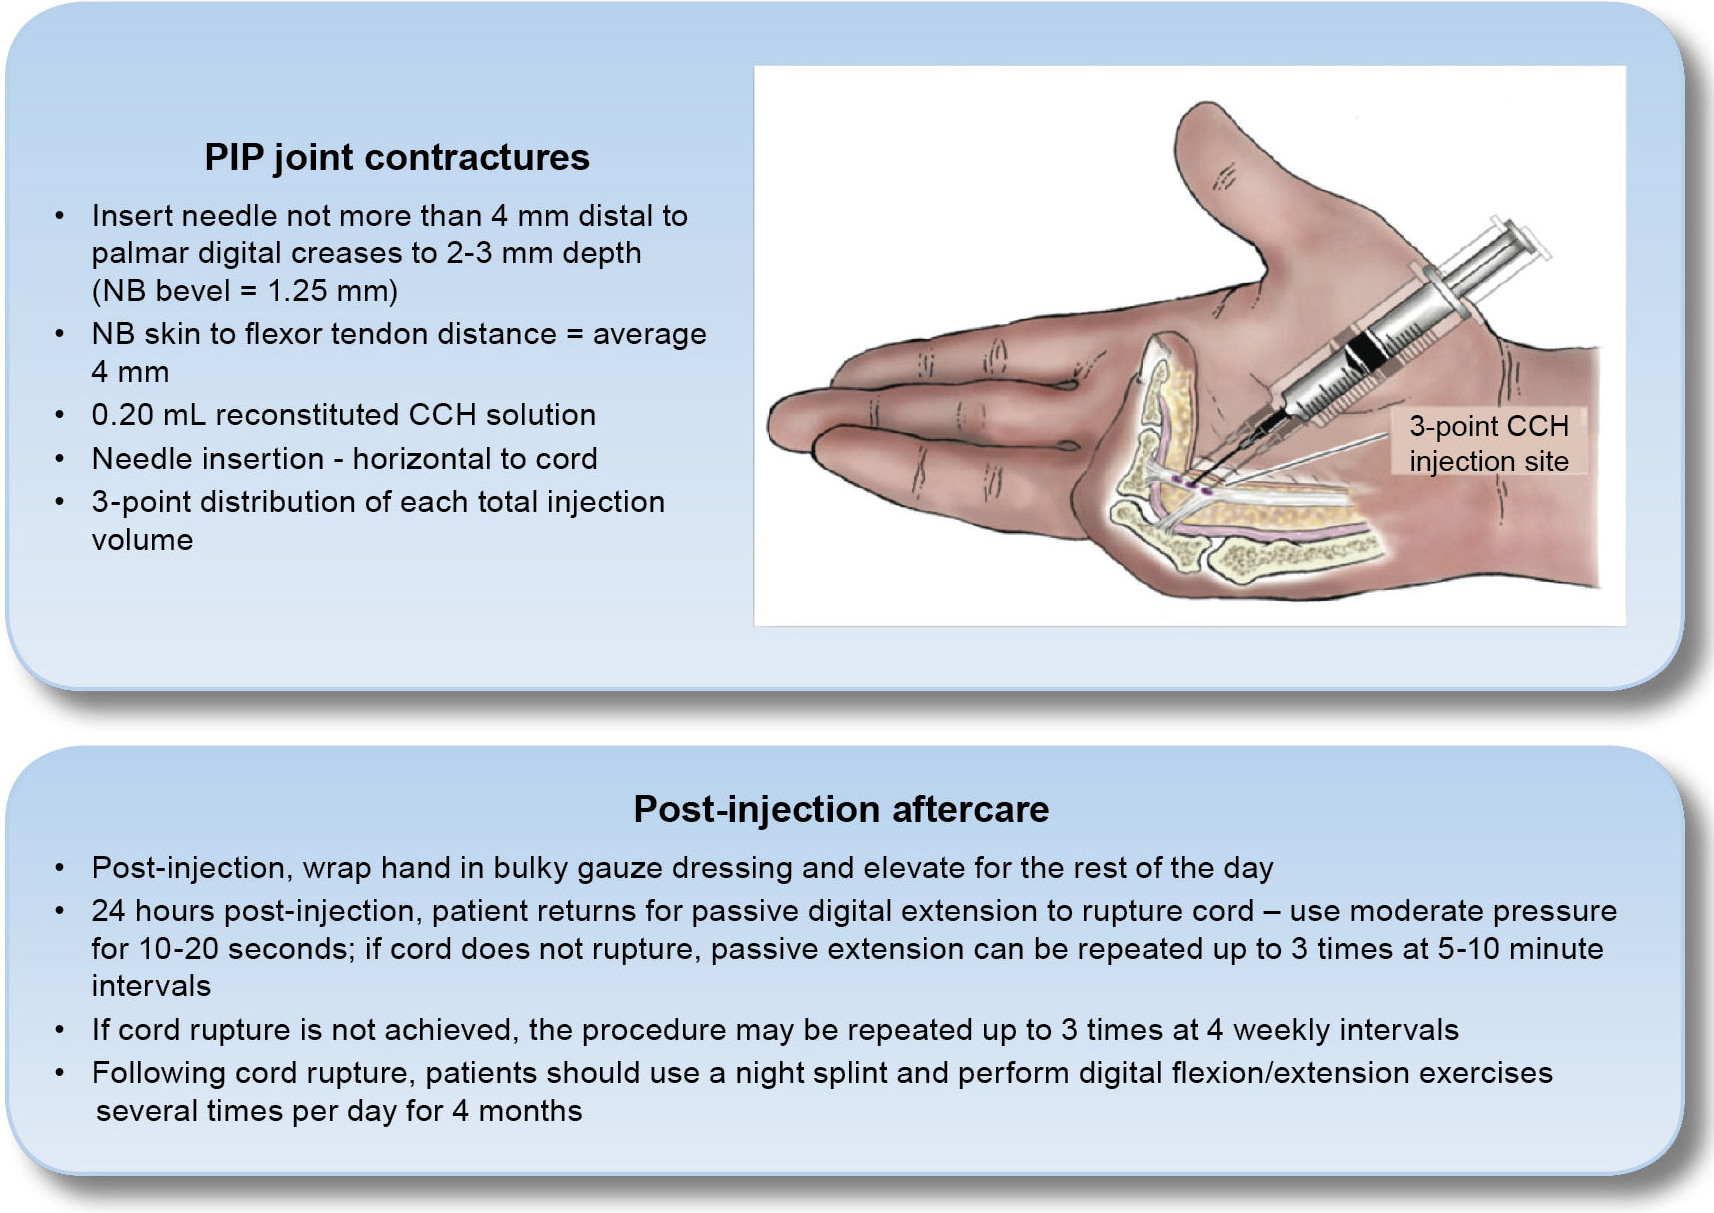 Figure 15: CCH injection technique for MP and PIP joints and suggested aftercare